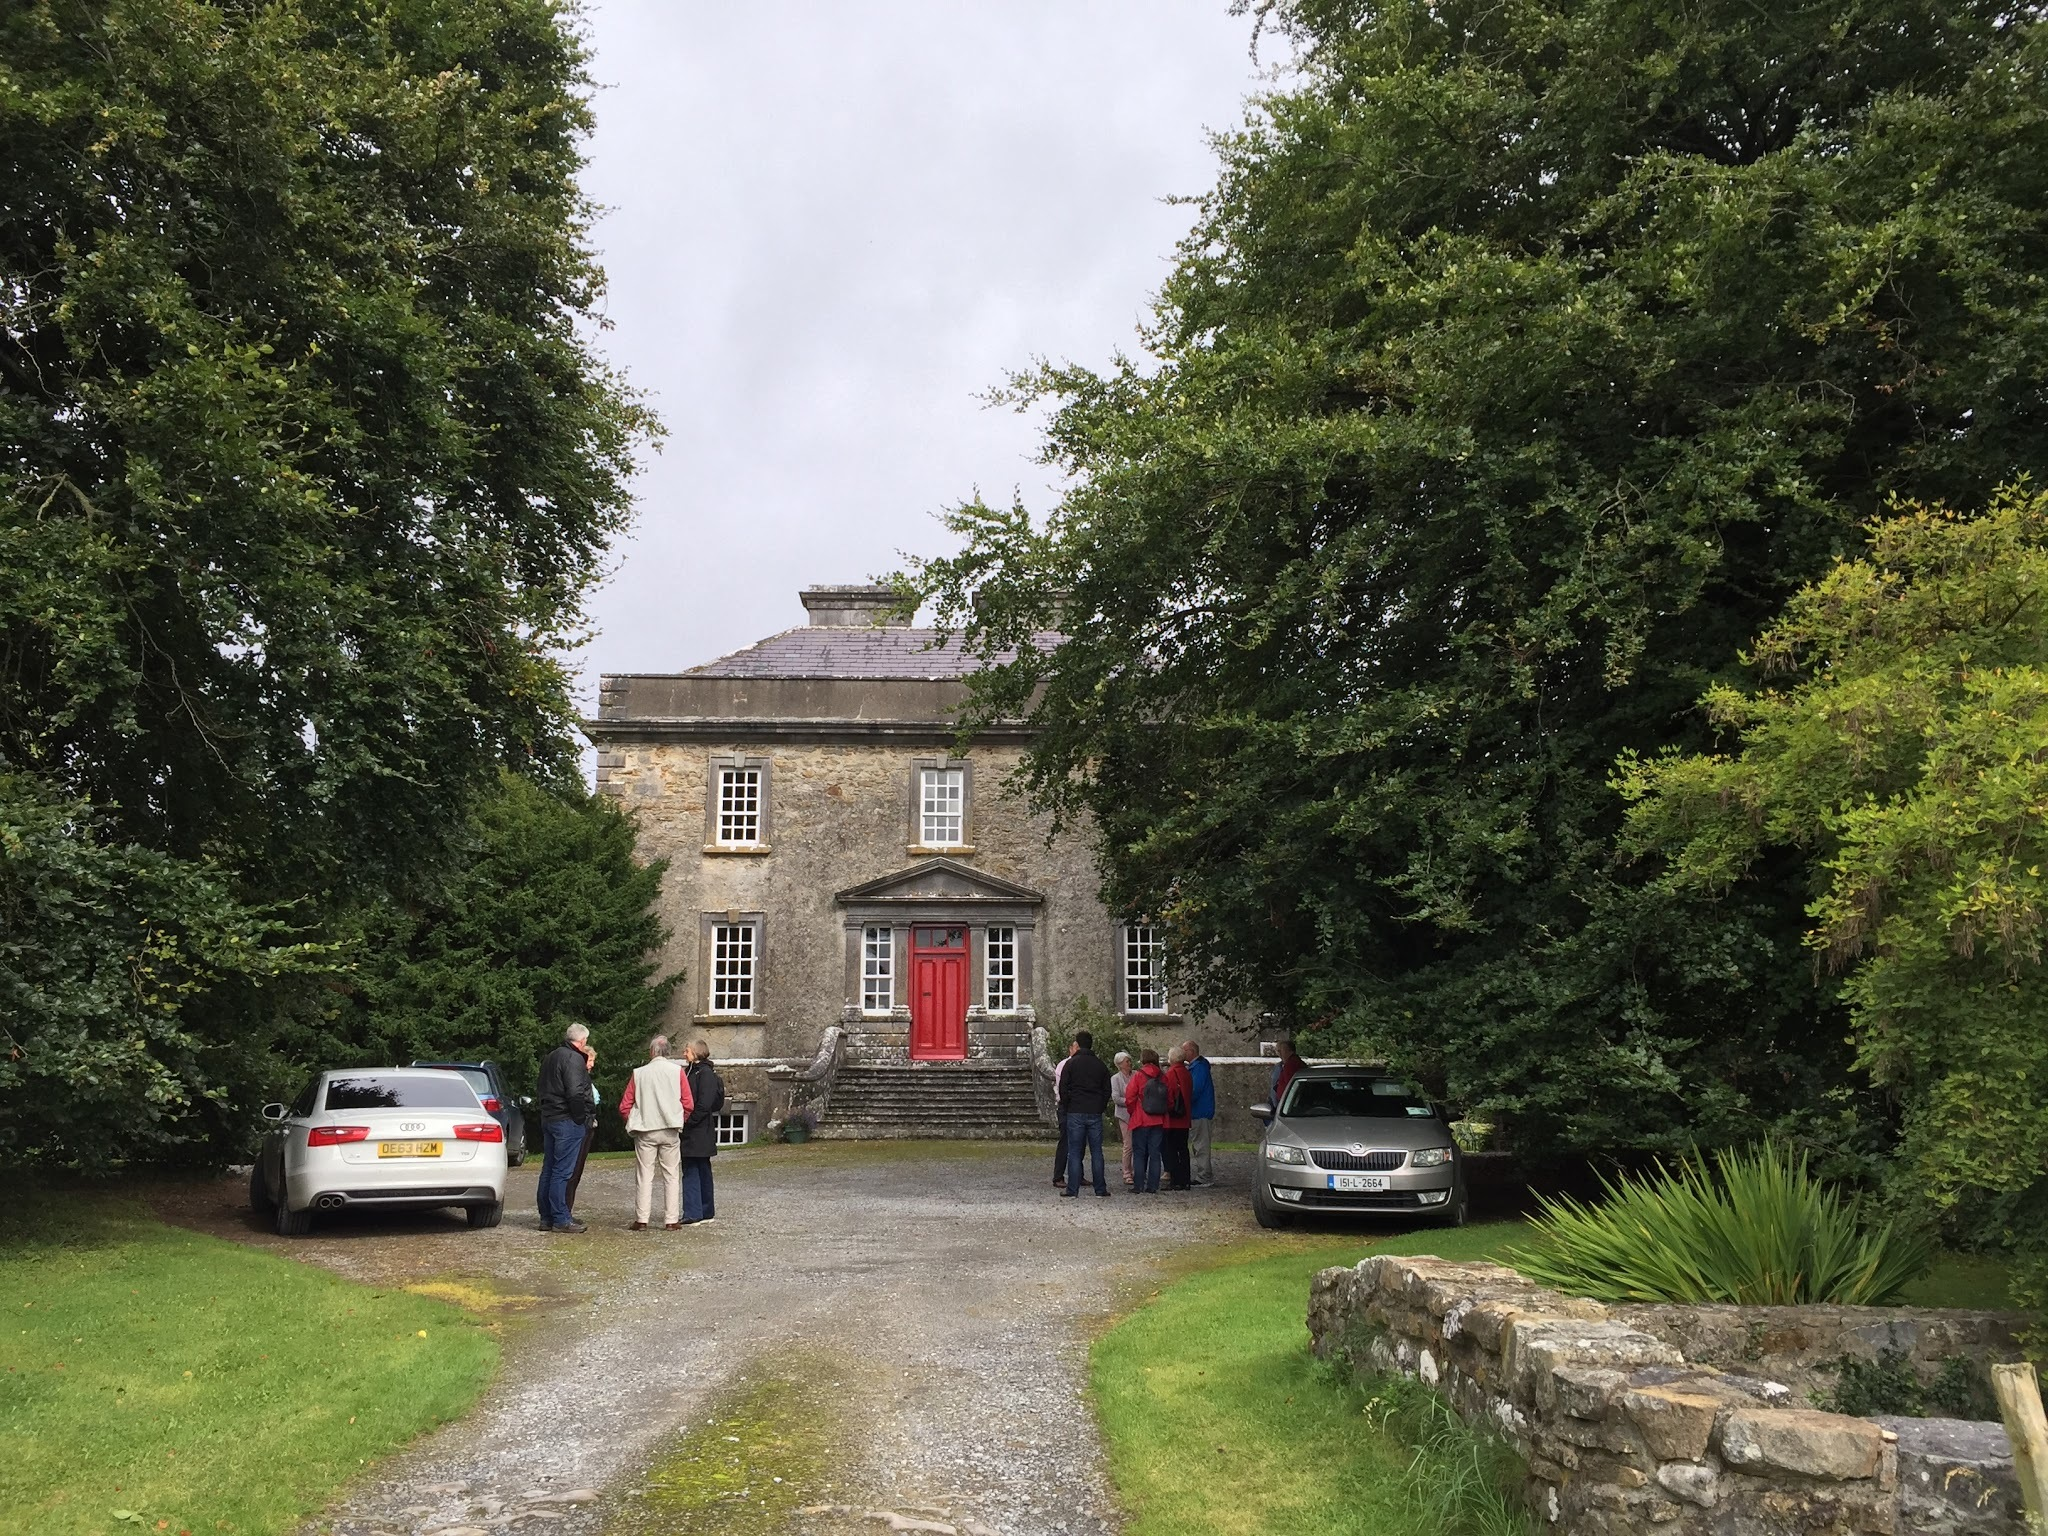 1-IGS-Limerick-Chapter-Trip-to-Ledwithstown-House-Sepember-2017.jpg#asset:7793